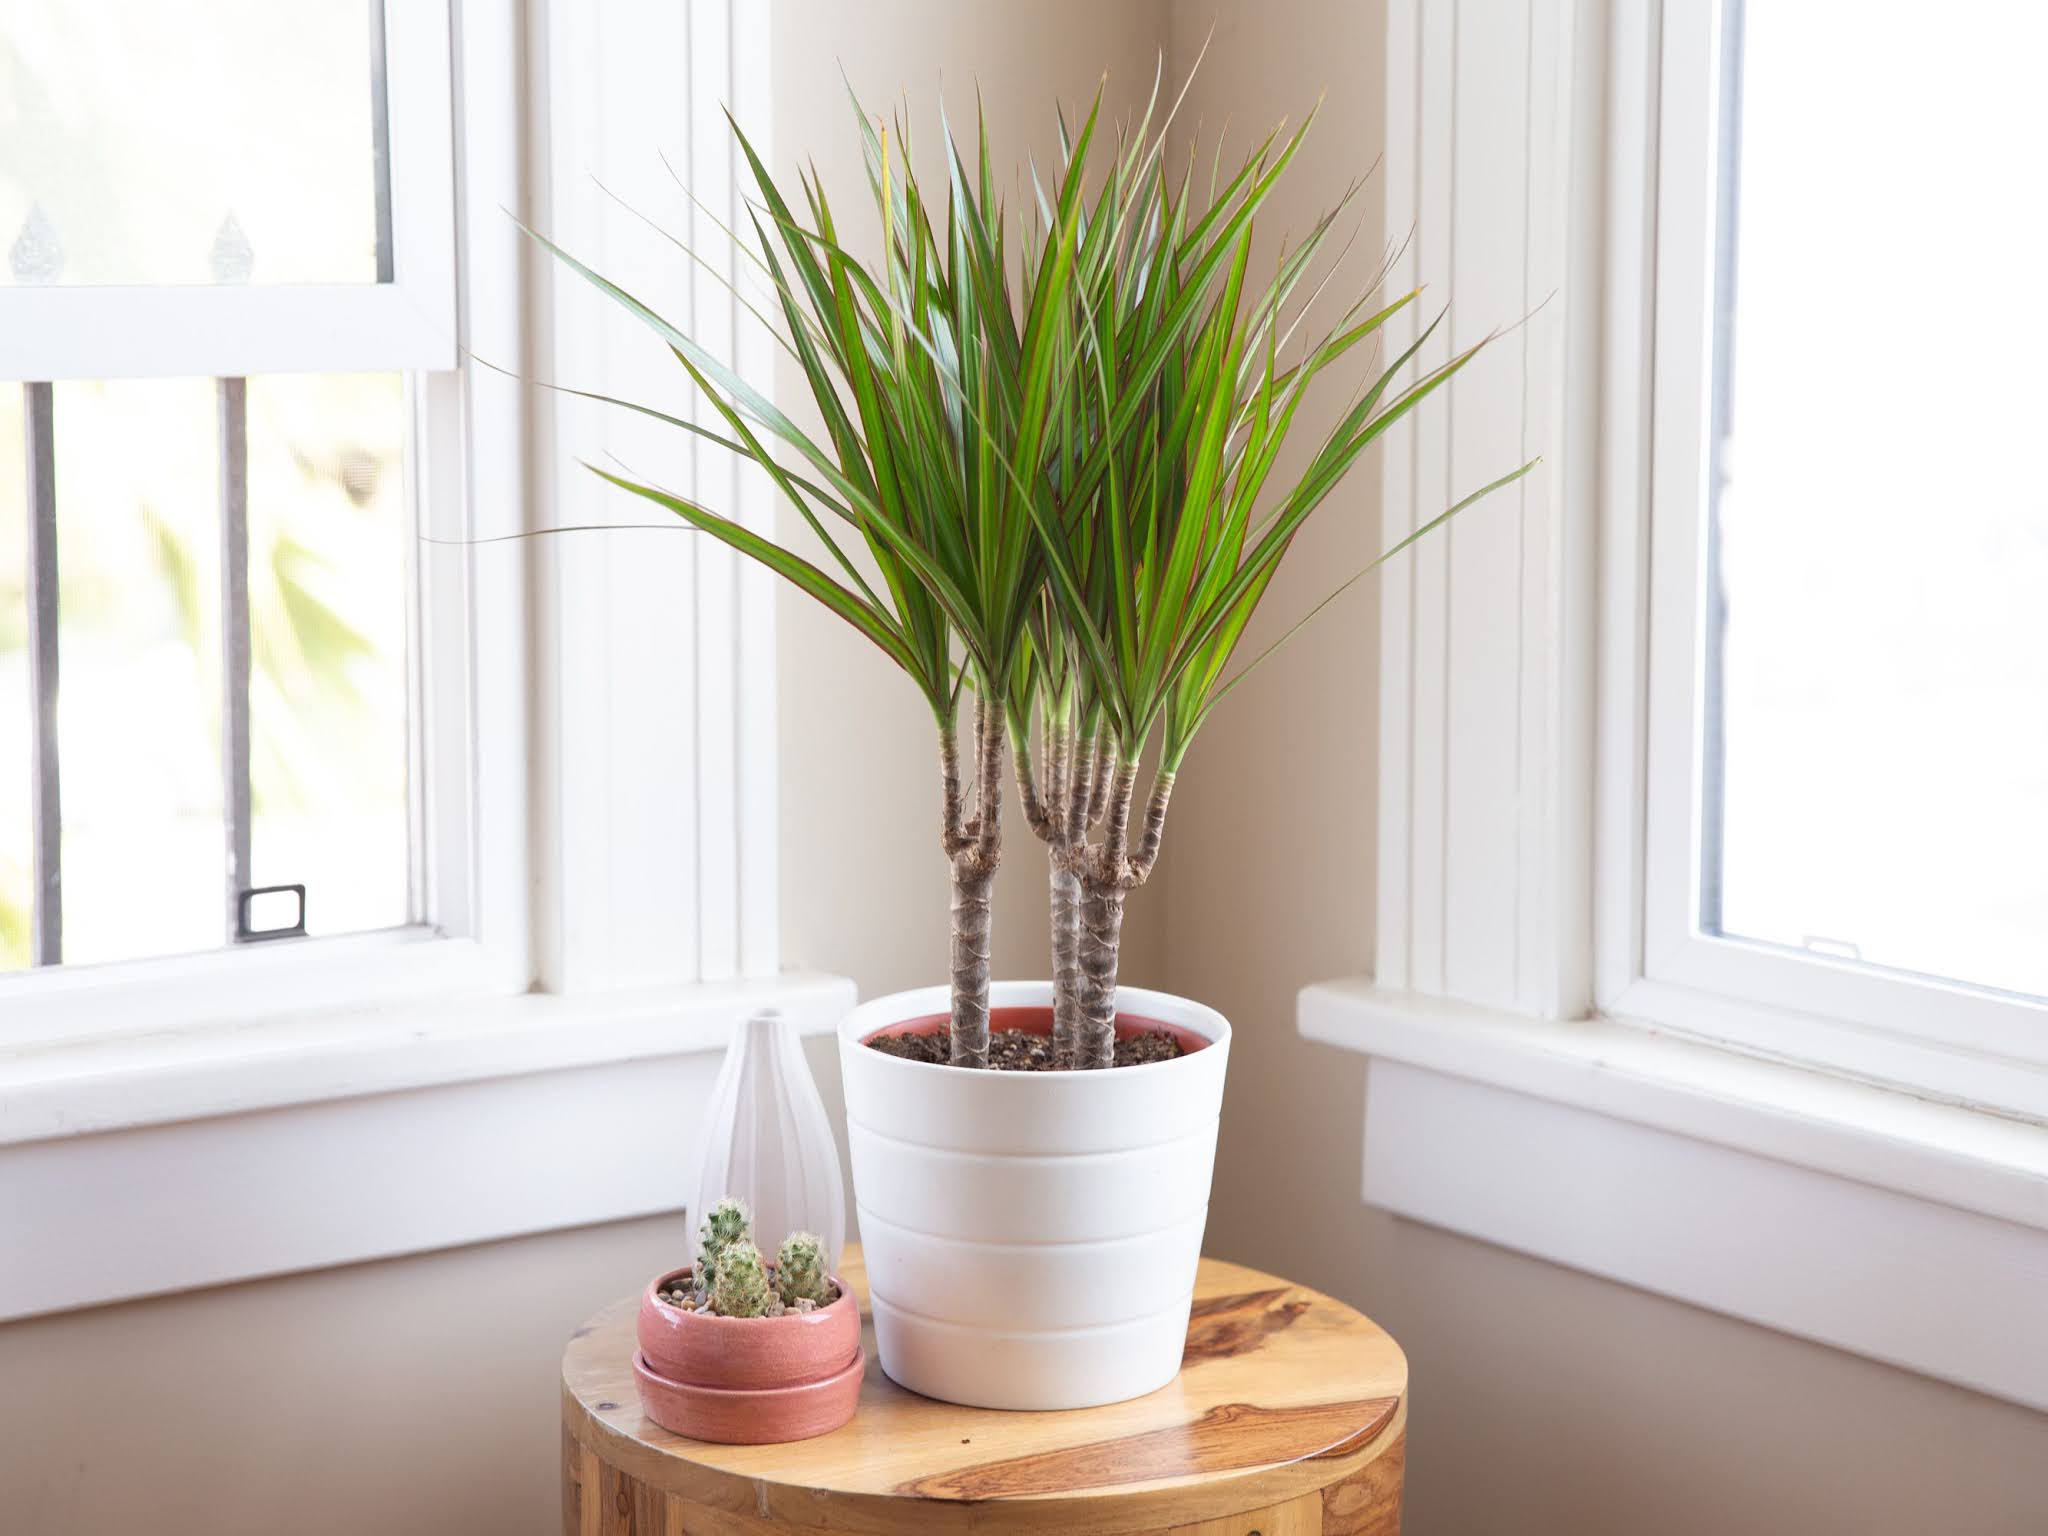 Buy dracaena Colorama plant online for decorate purpose